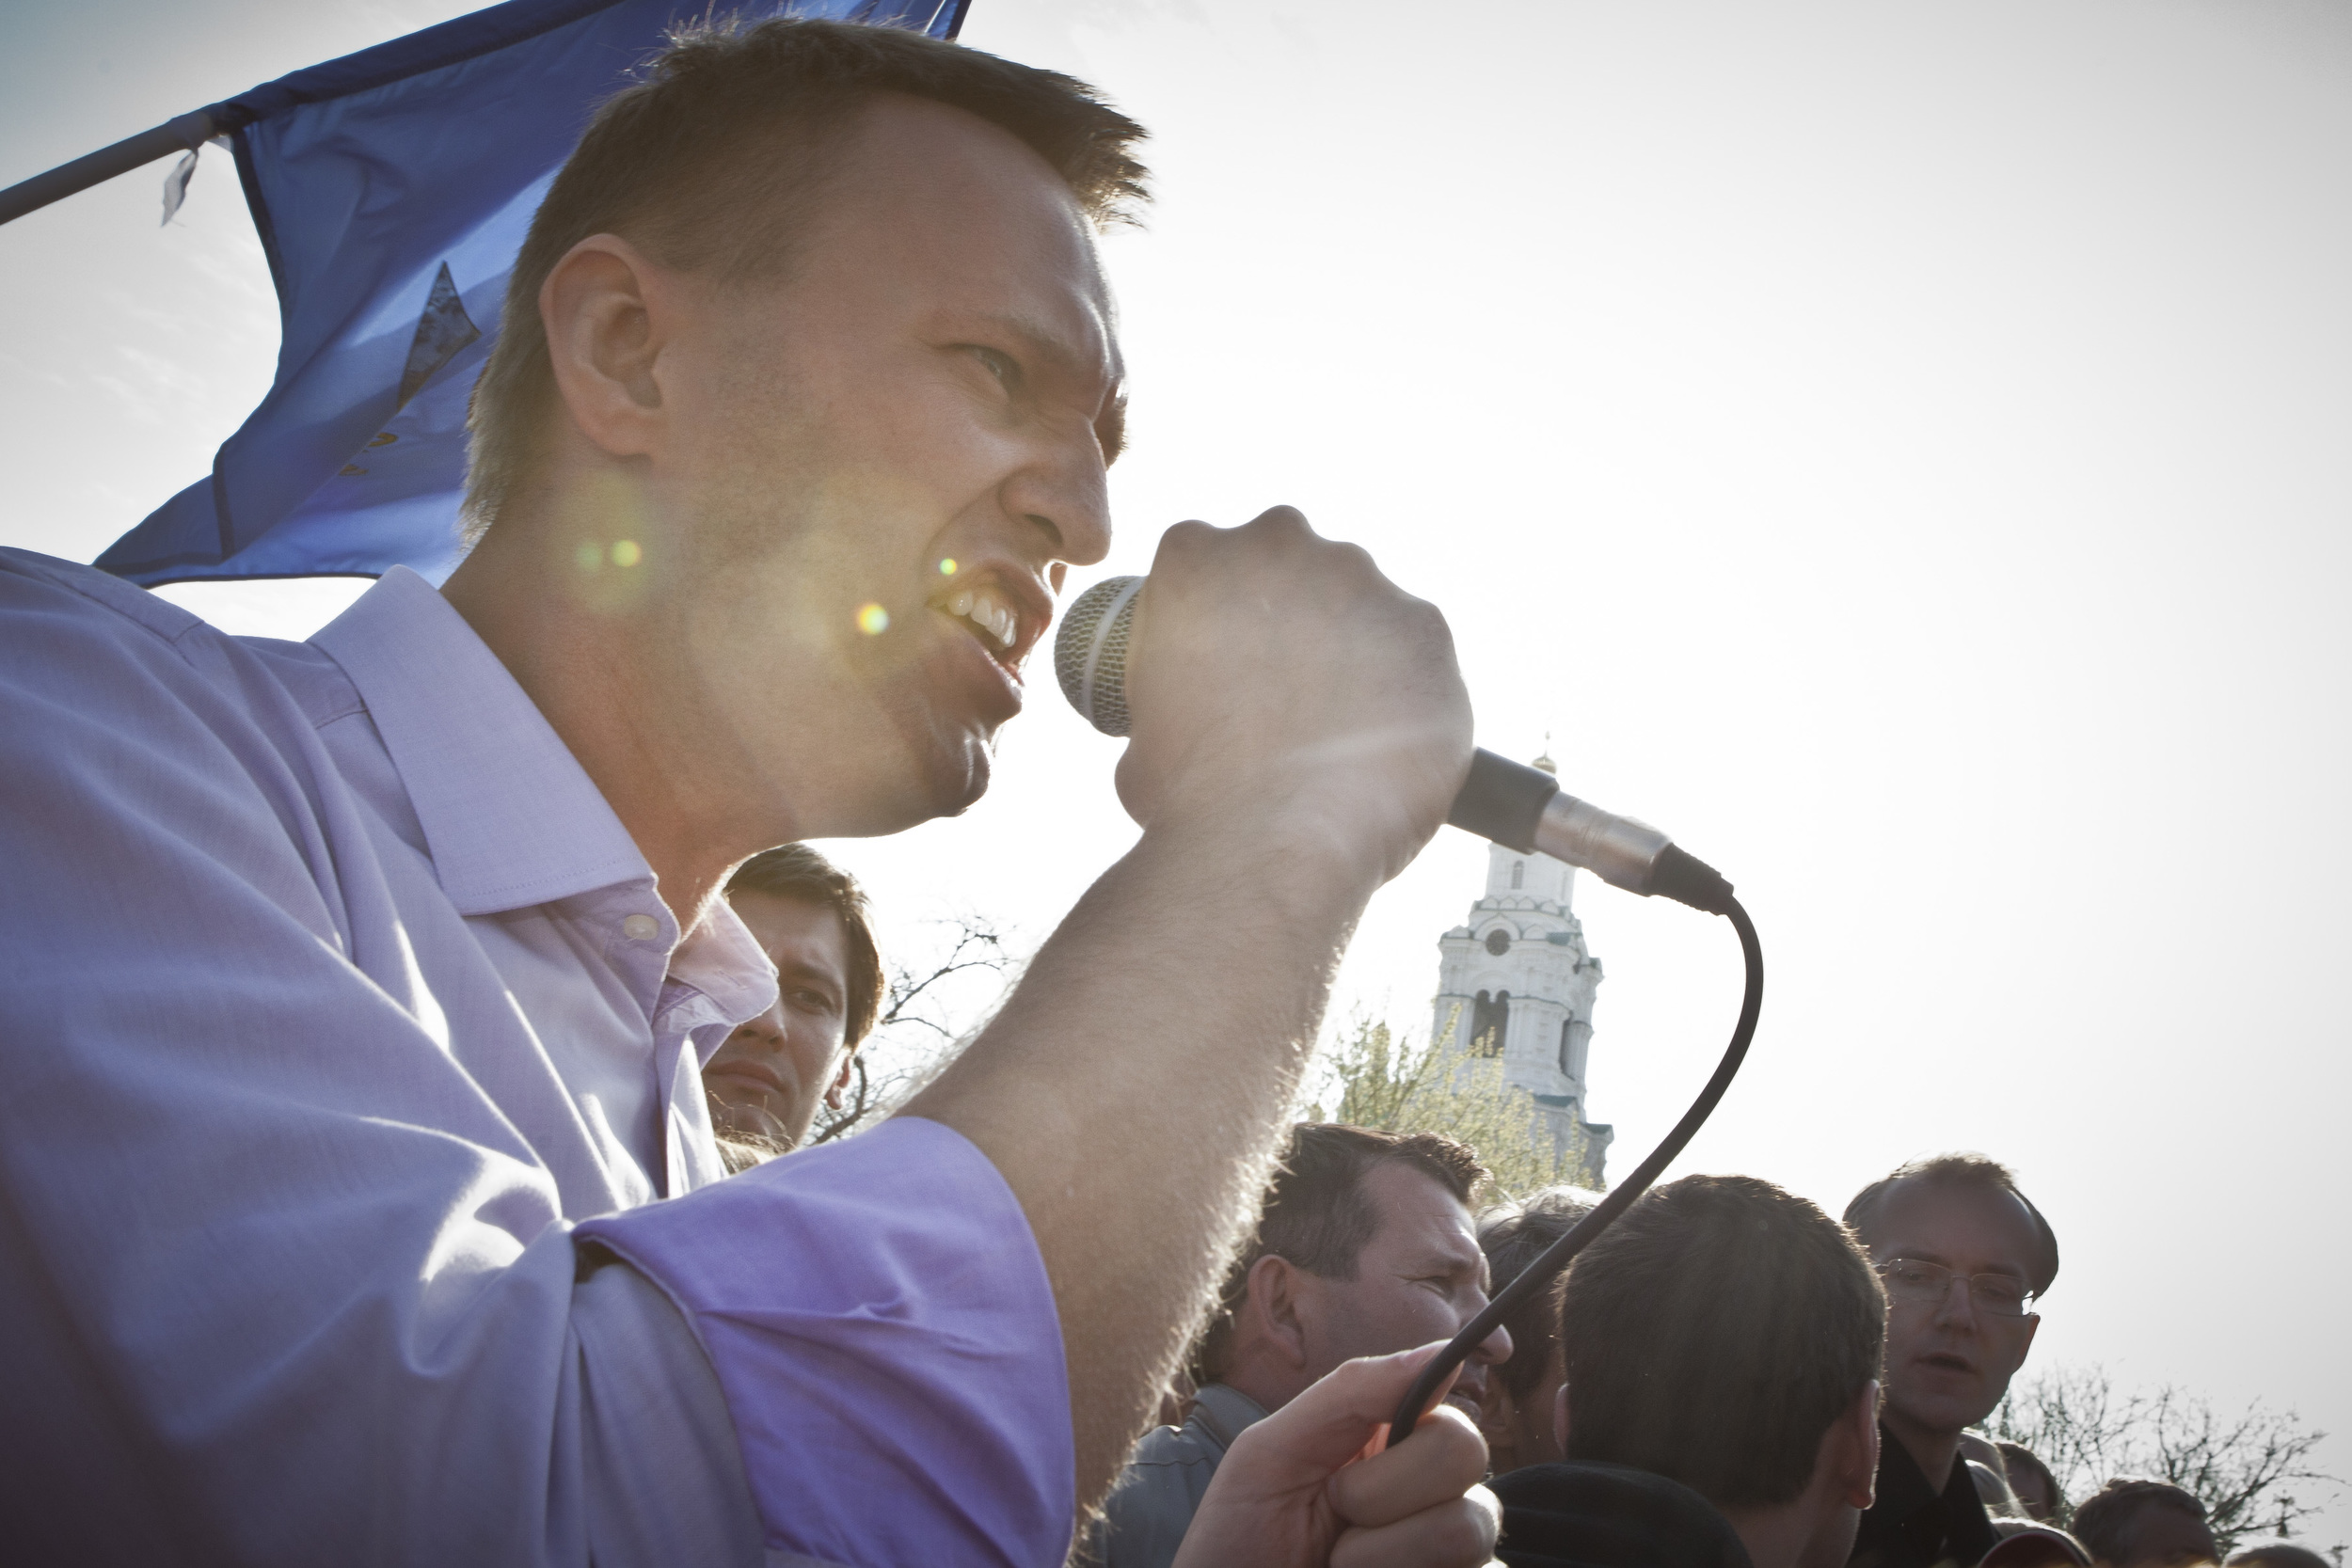 Alexey Navalny speaks at a rally in Astrakhan in support of Oleg Shein (on the background) who was claimimg he won mayoral election that were rigged in favor of his opponent. April 2012